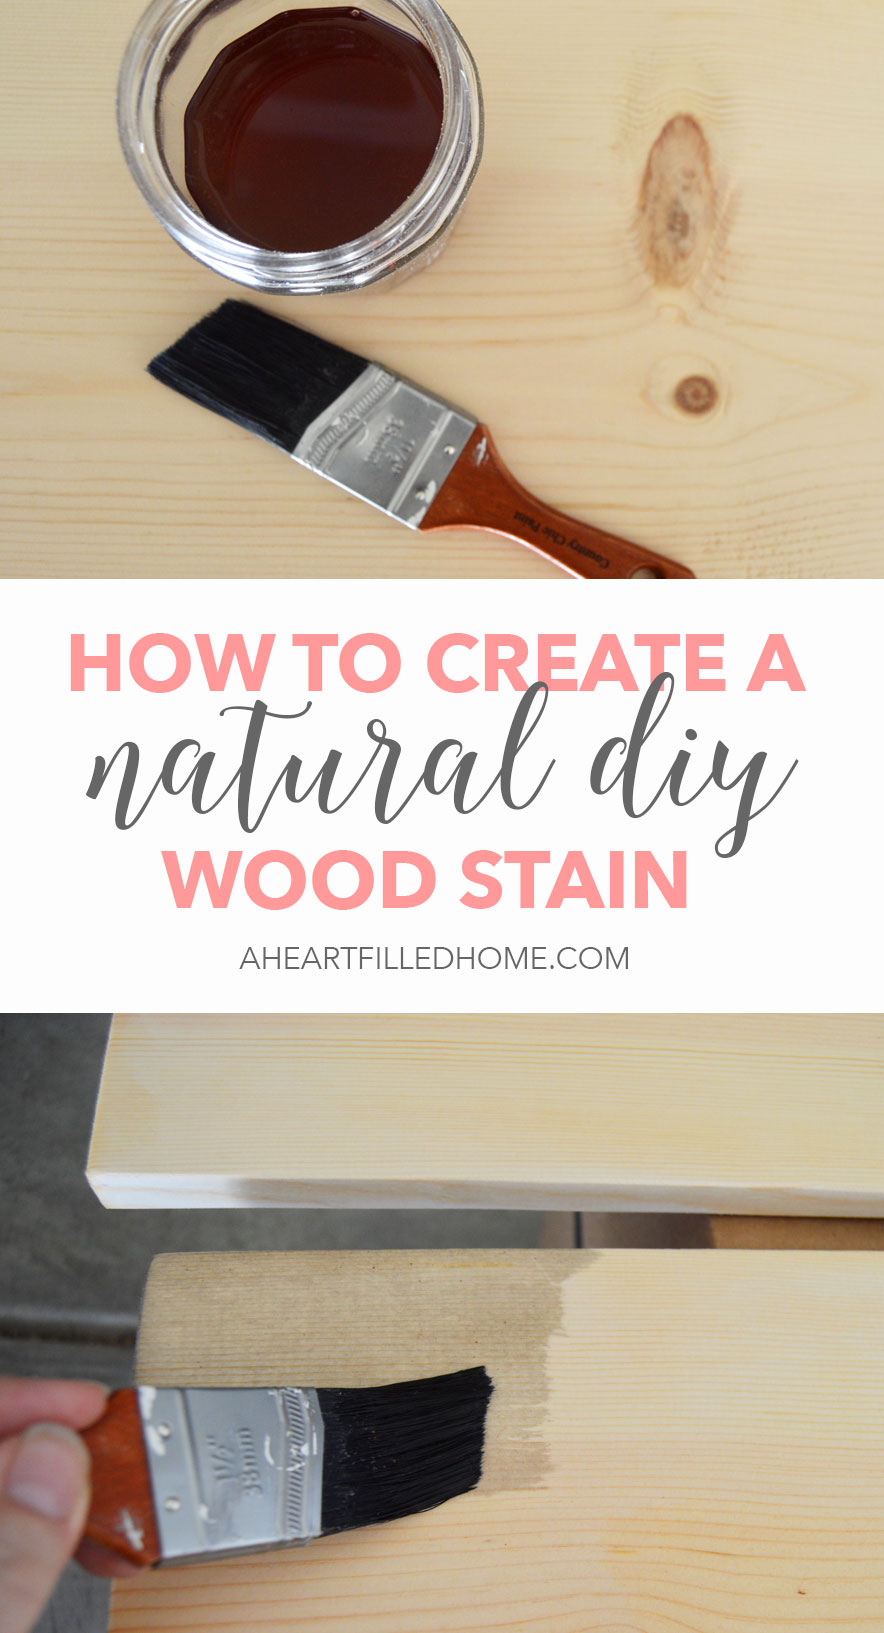 How To Create A Natural DIY Wood Stain - the perfect way to naturally stain wood to use in home decor projects!